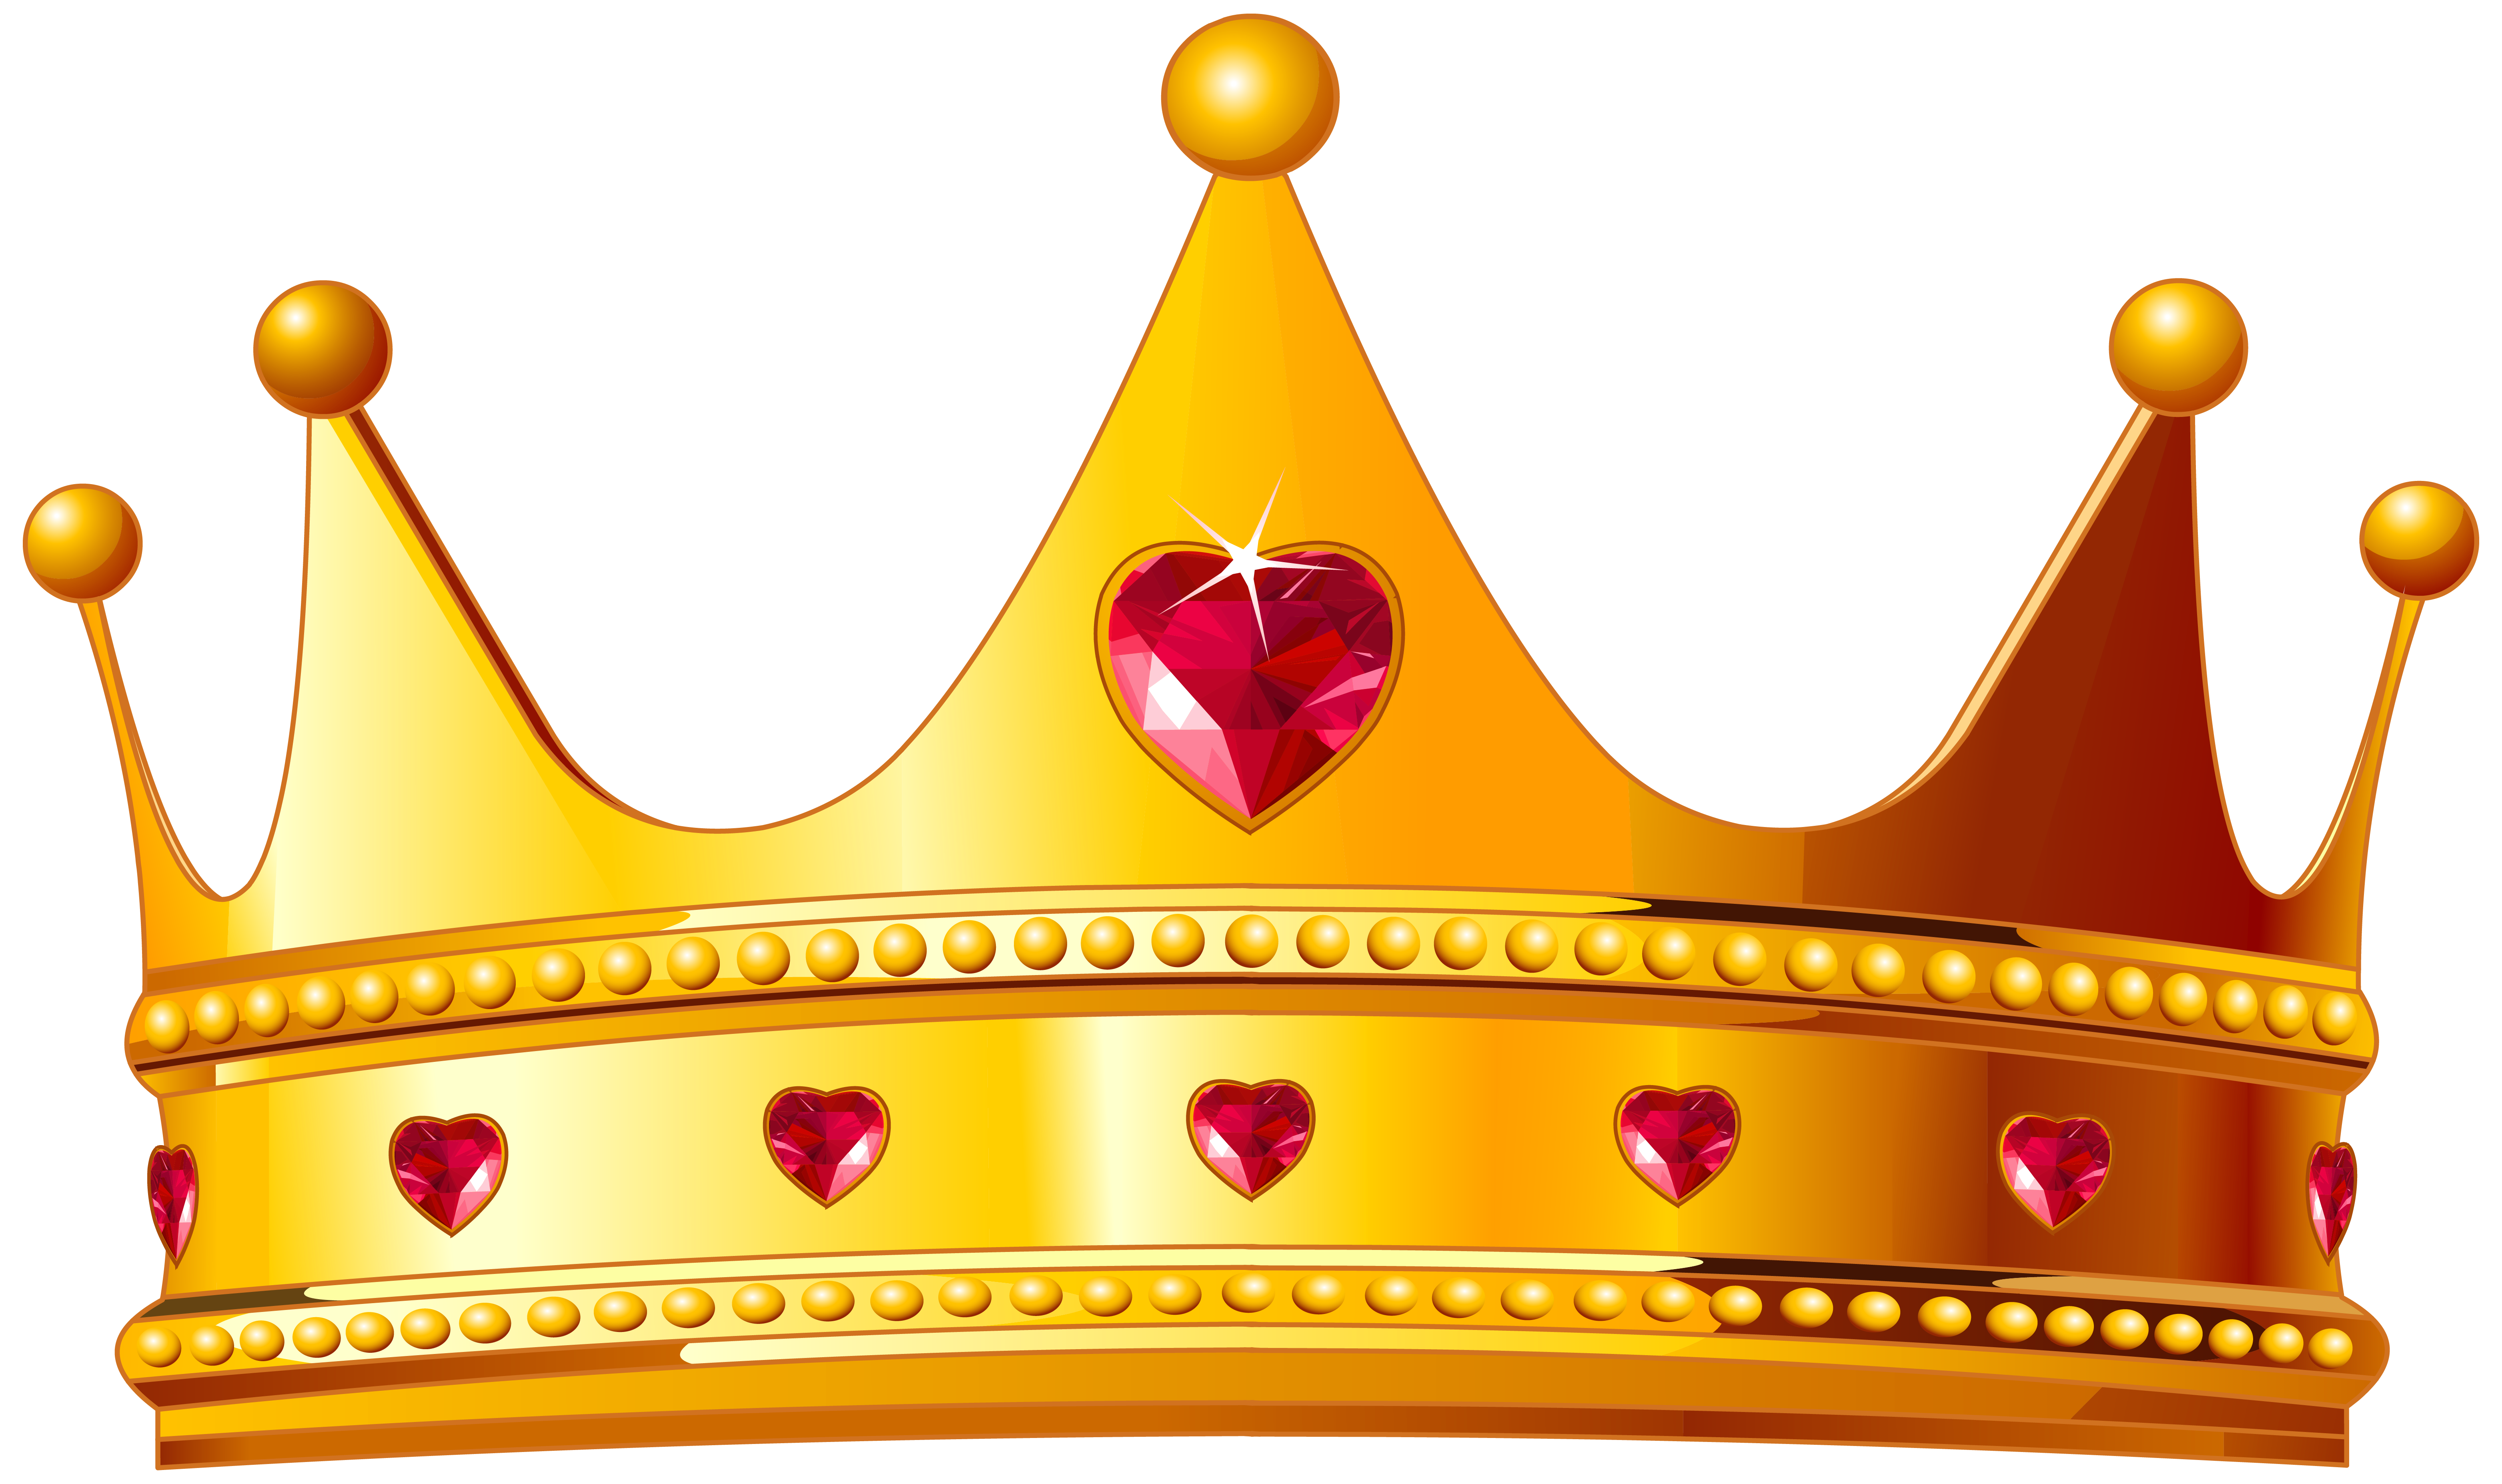 Famous with crown clipart graphic transparent download Golden Crown with Hearts PNG Clipart Image | Princess Printables ... graphic transparent download